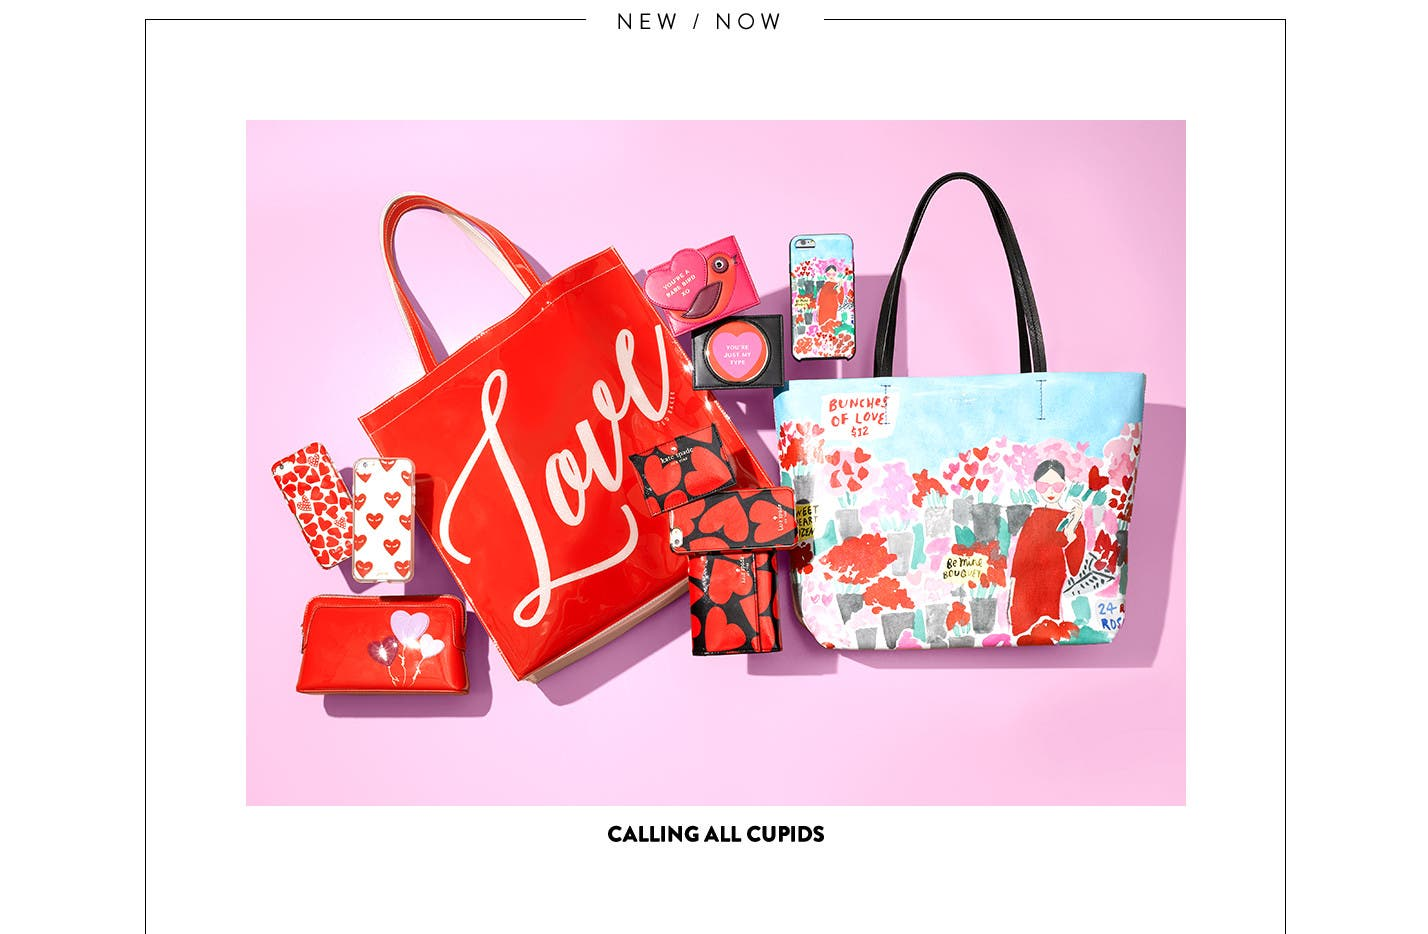 Calling all cupids: handbag and tech gifts.